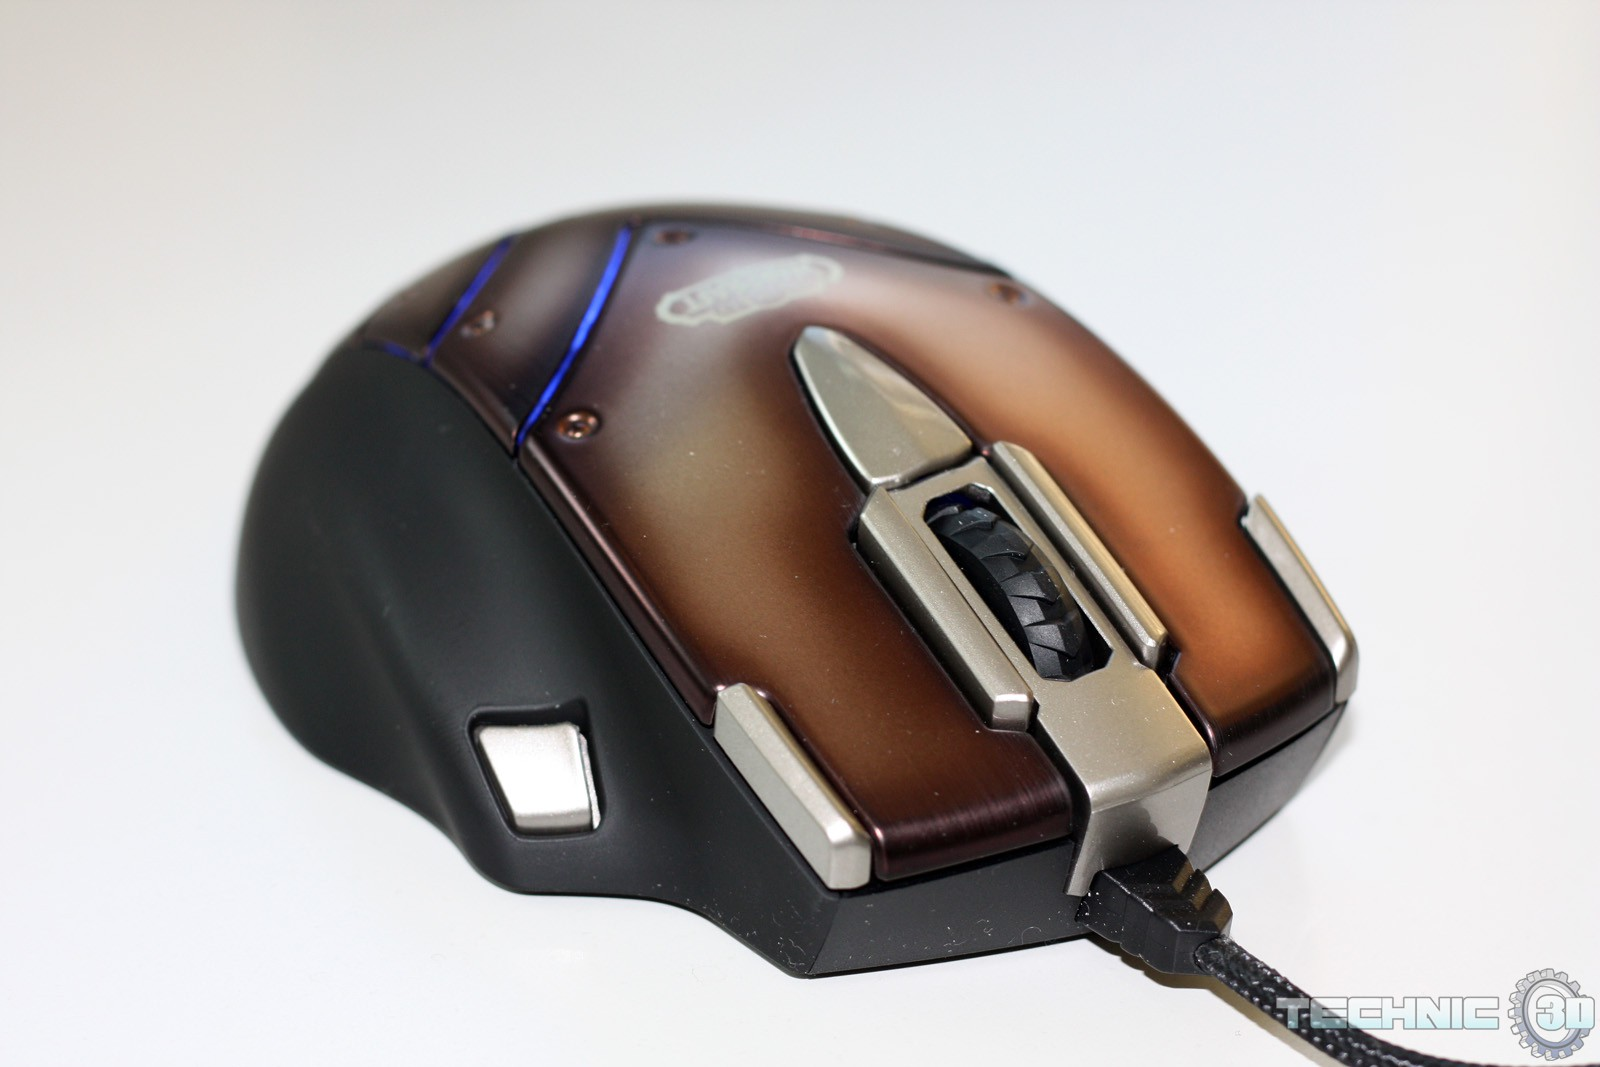 SteelSeries World of Warcraft Cataclysm MMO Gaming Mouse Driver UPDATE